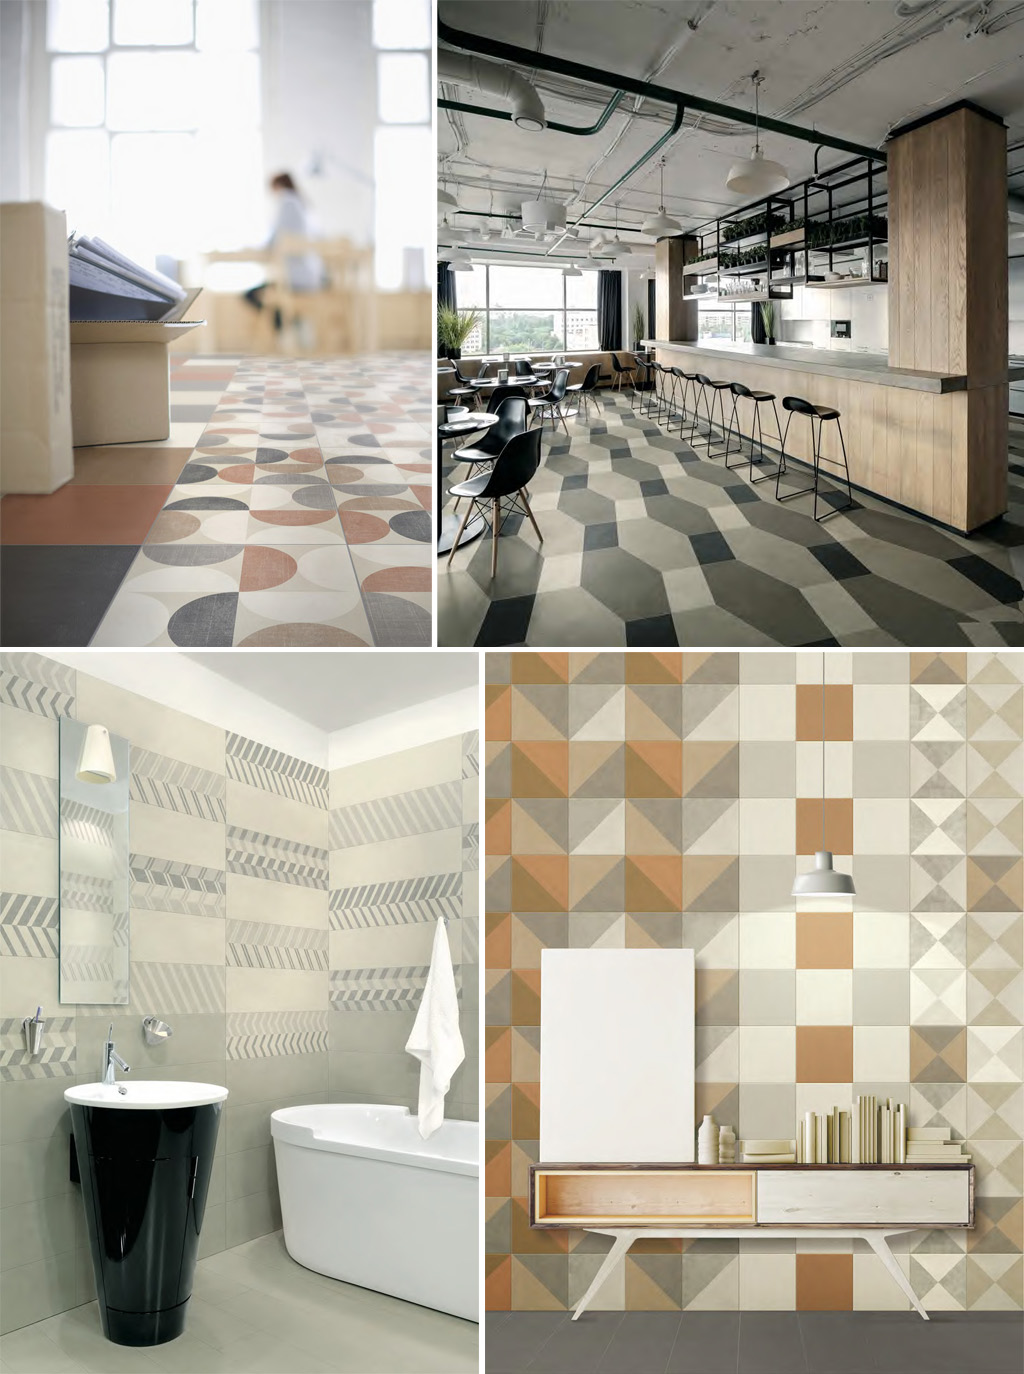 Ceramic and Porcelain Tiles by Verso25